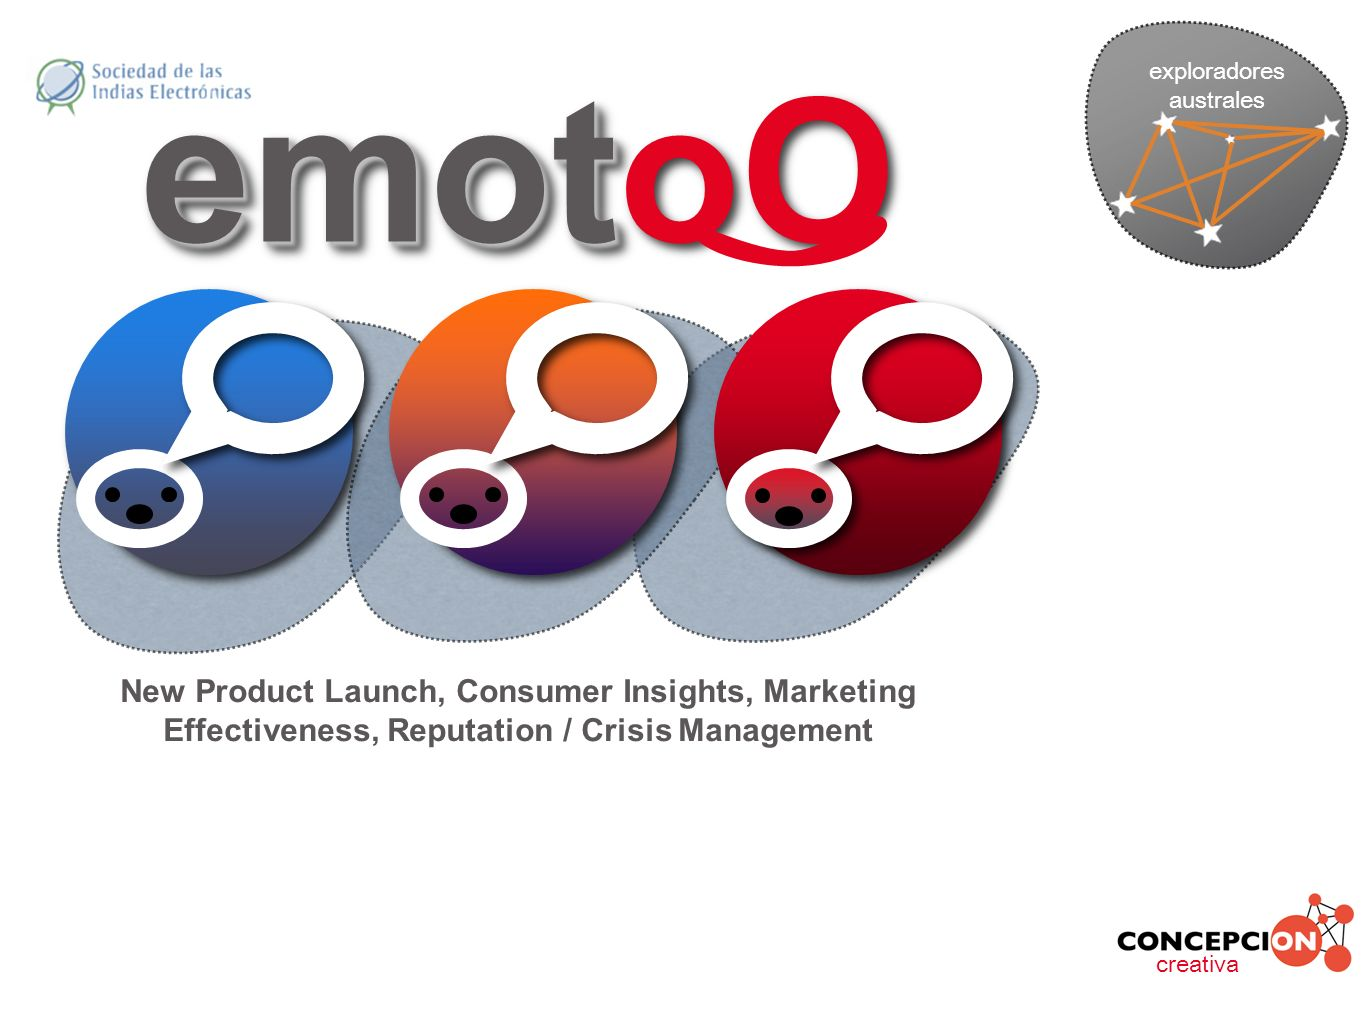 emot emotoO creativa exploradores australes New Product Launch, Consumer Insights, Marketing Effectiveness, Reputation / Crisis Management